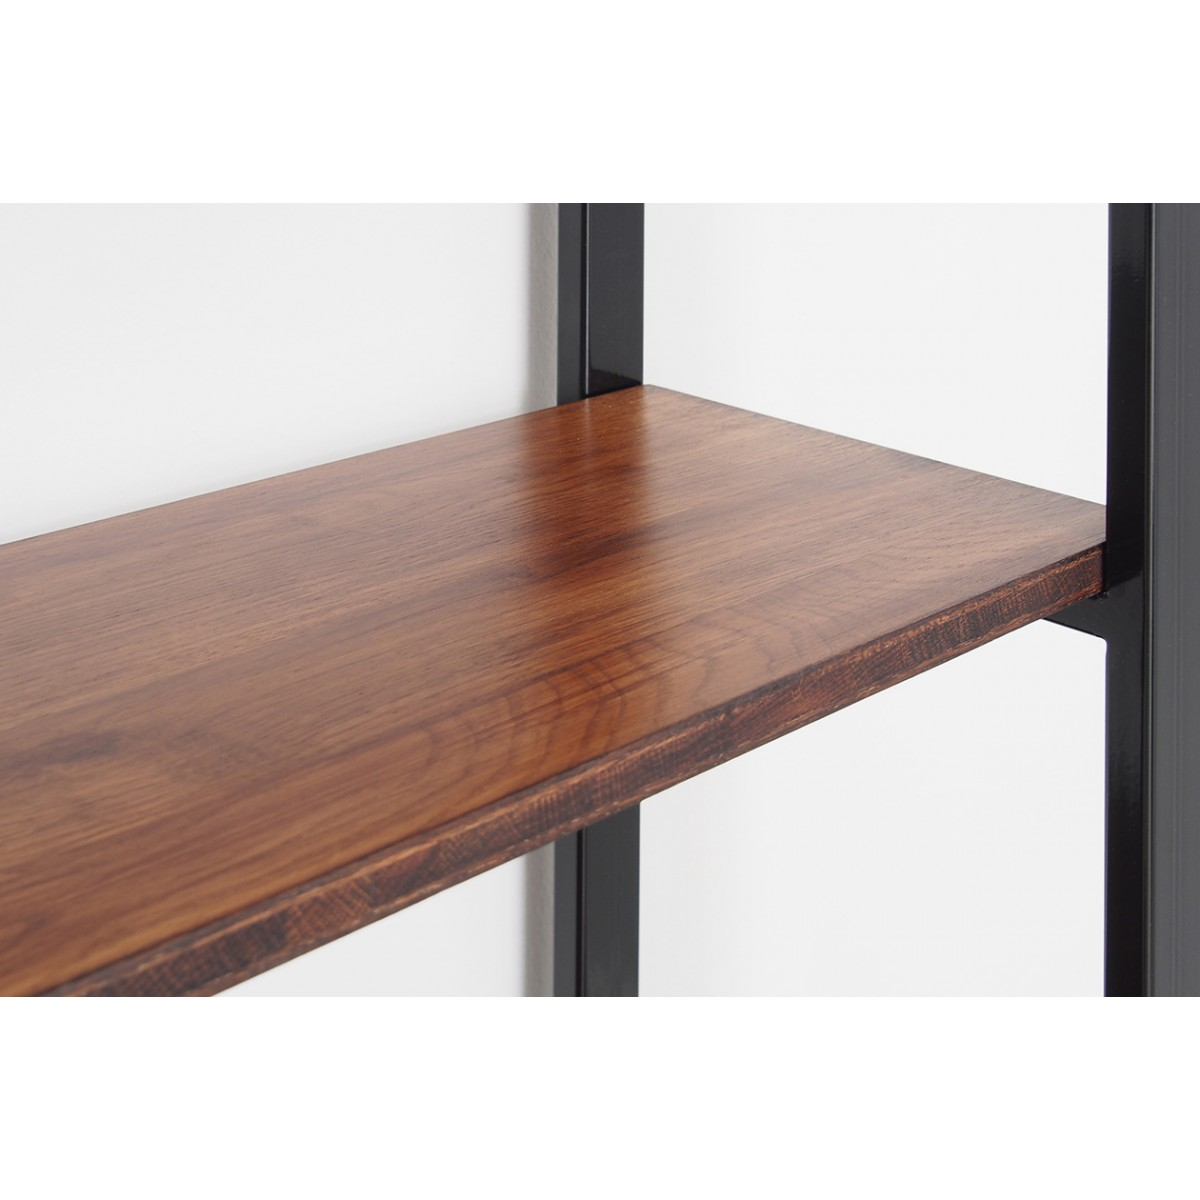 REGAL | SUSTEREN OAK